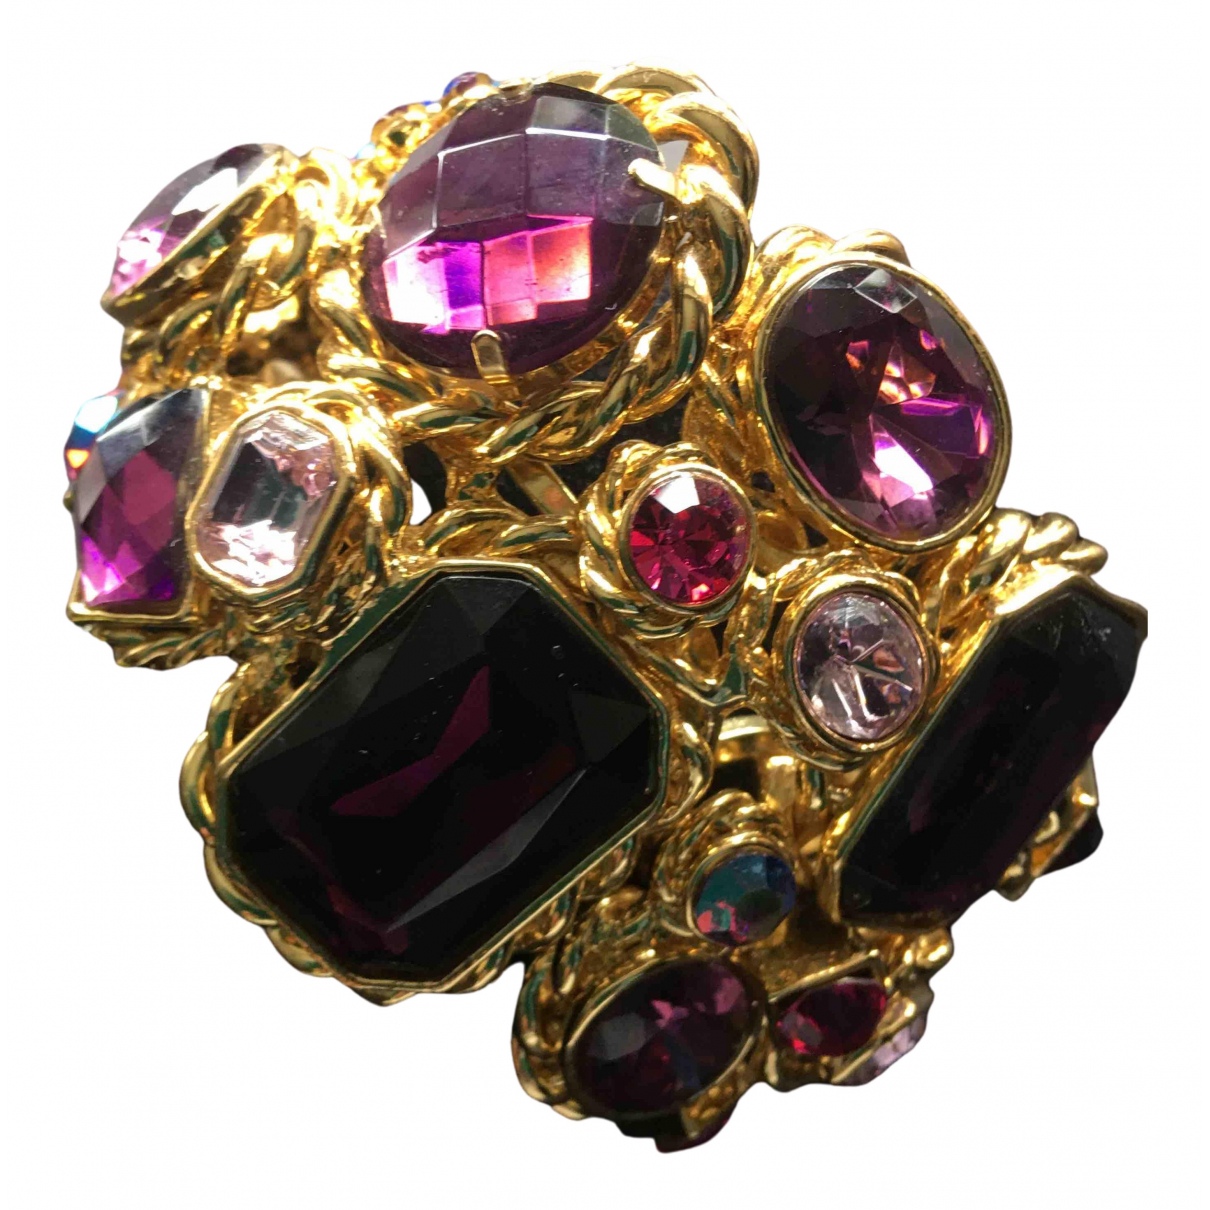 Non Signe / Unsigned Amethyste Armband in  Gold Kristall